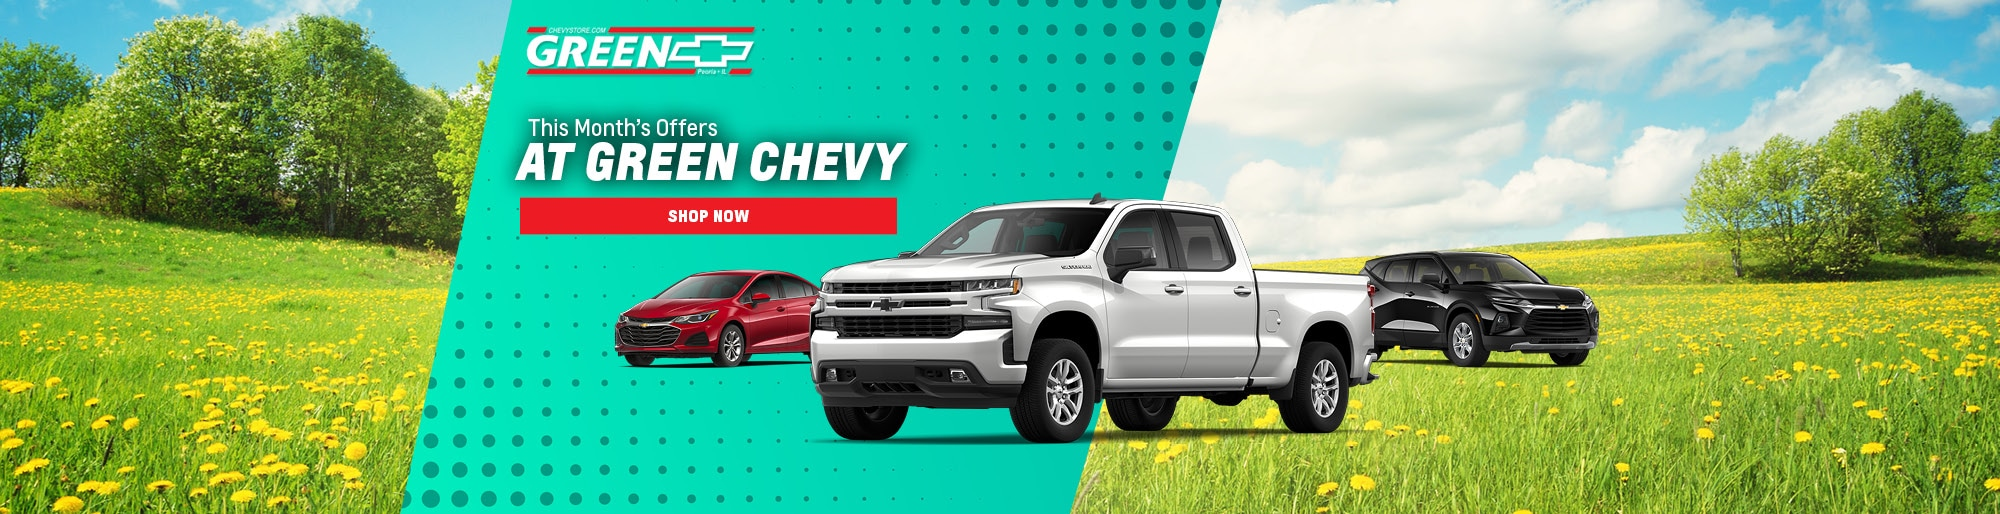 Car Dealerships Peoria Il >> Green Chevy Dealer Peoria | New & Used Car Dealership ...